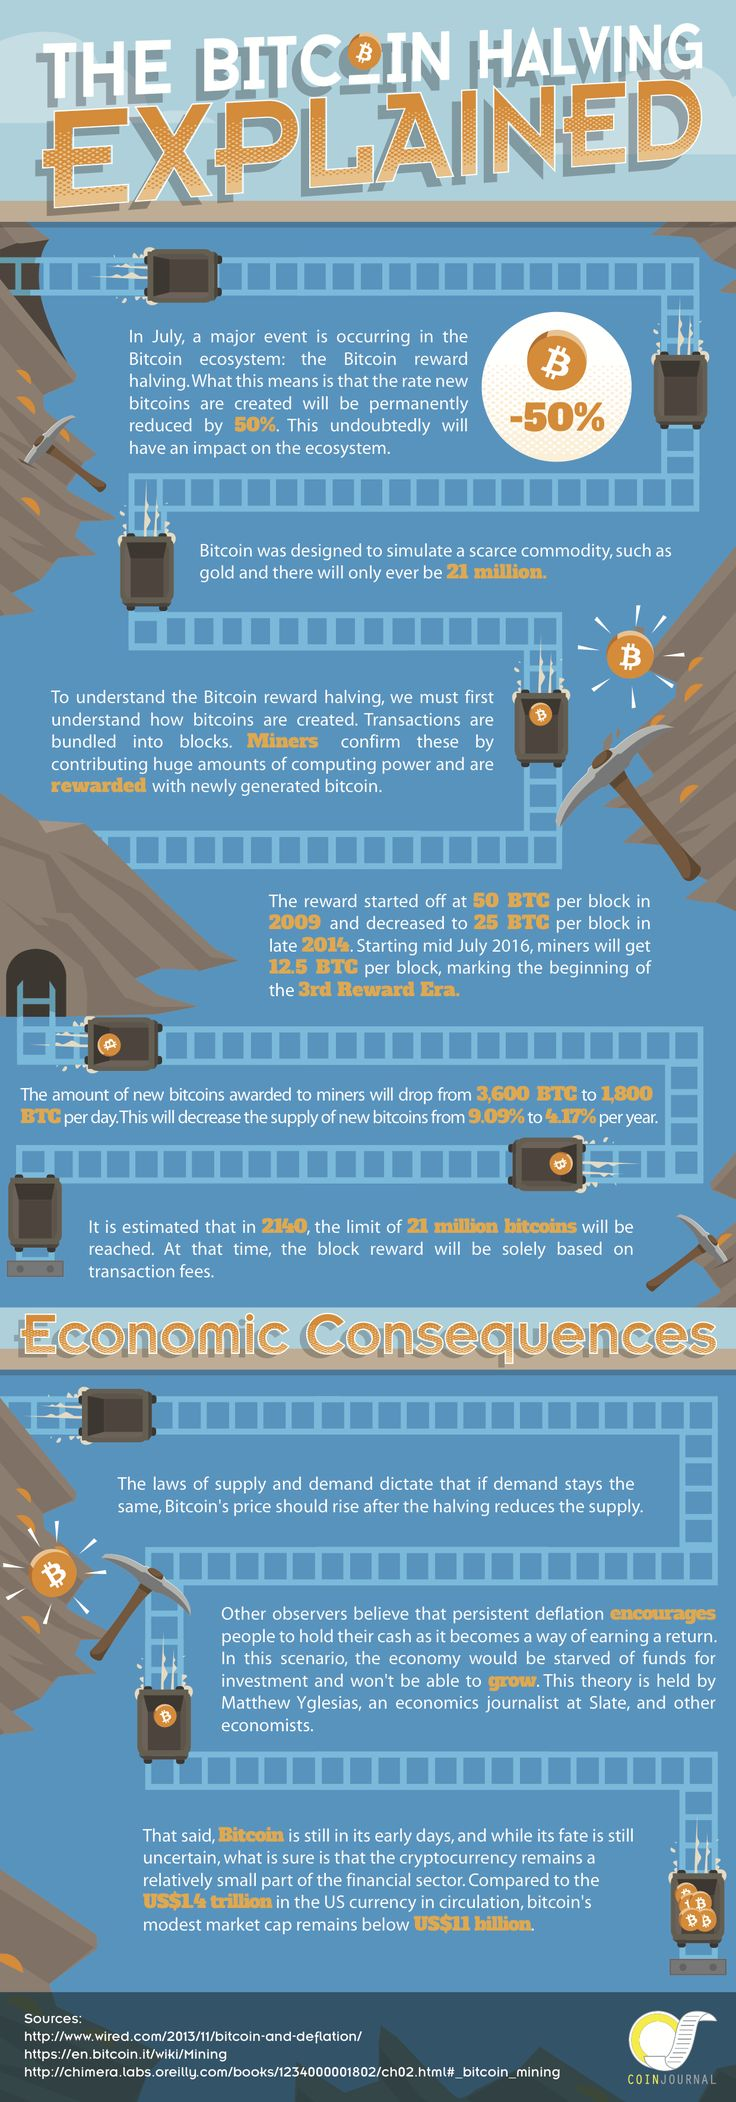 Bitcoin Halving Infographic From CoinJournal.net